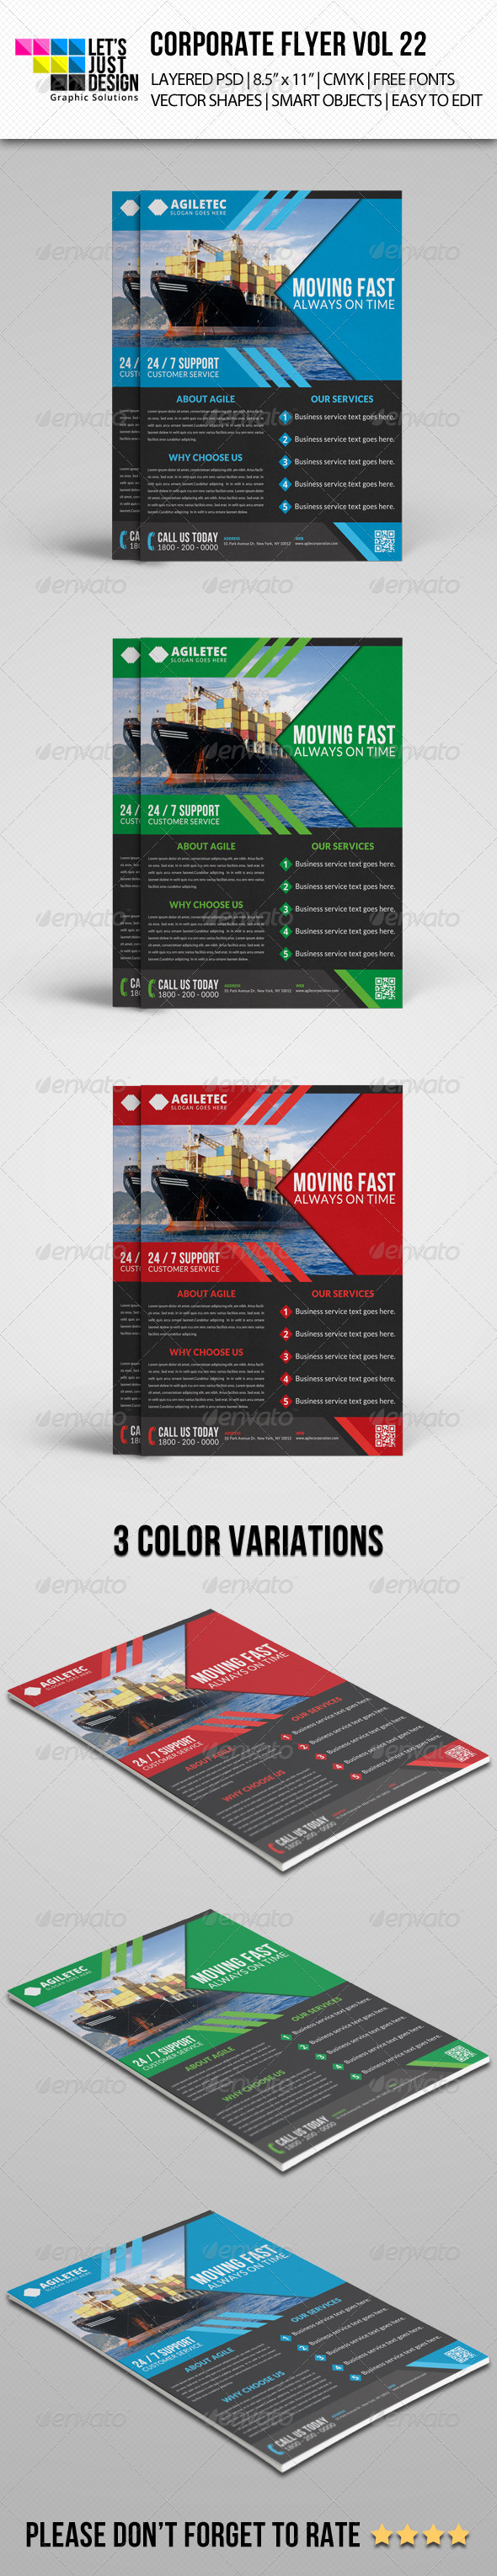 GraphicRiver Corporate Flyer Template Vol 22 8040443